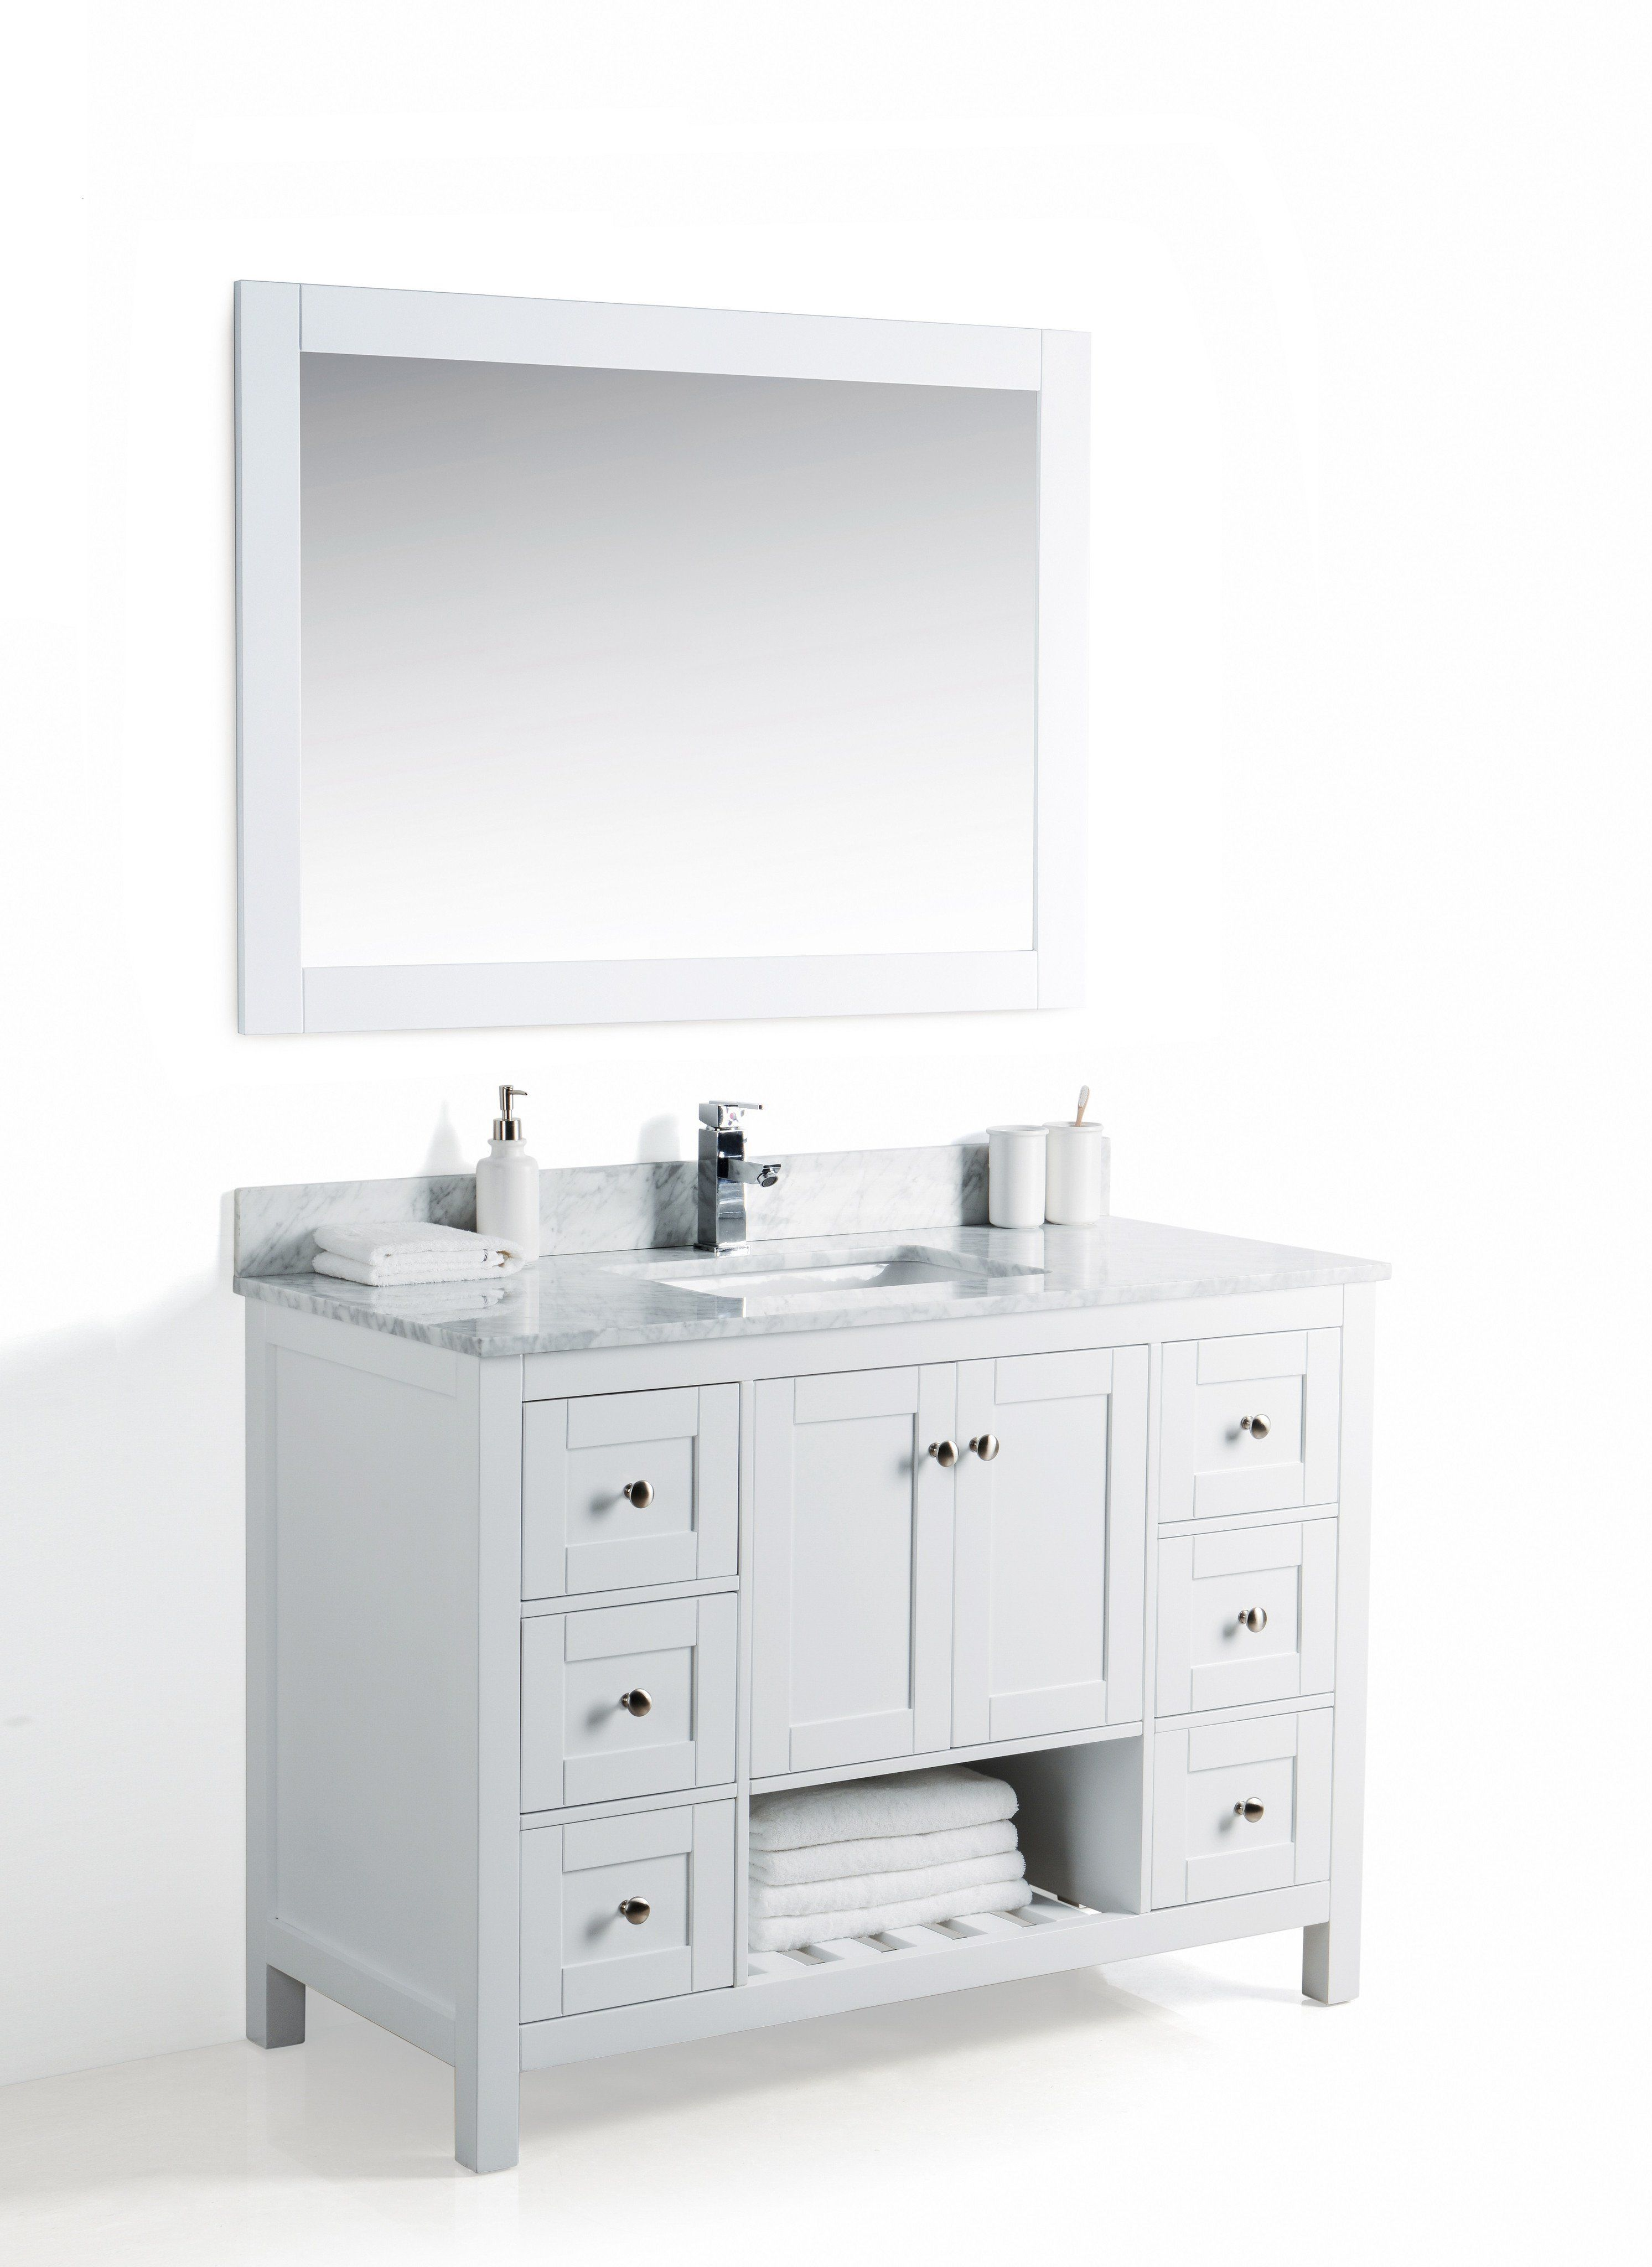 48 Inch Bathroom Vanity In White Six Roomy Drawers Ample Under